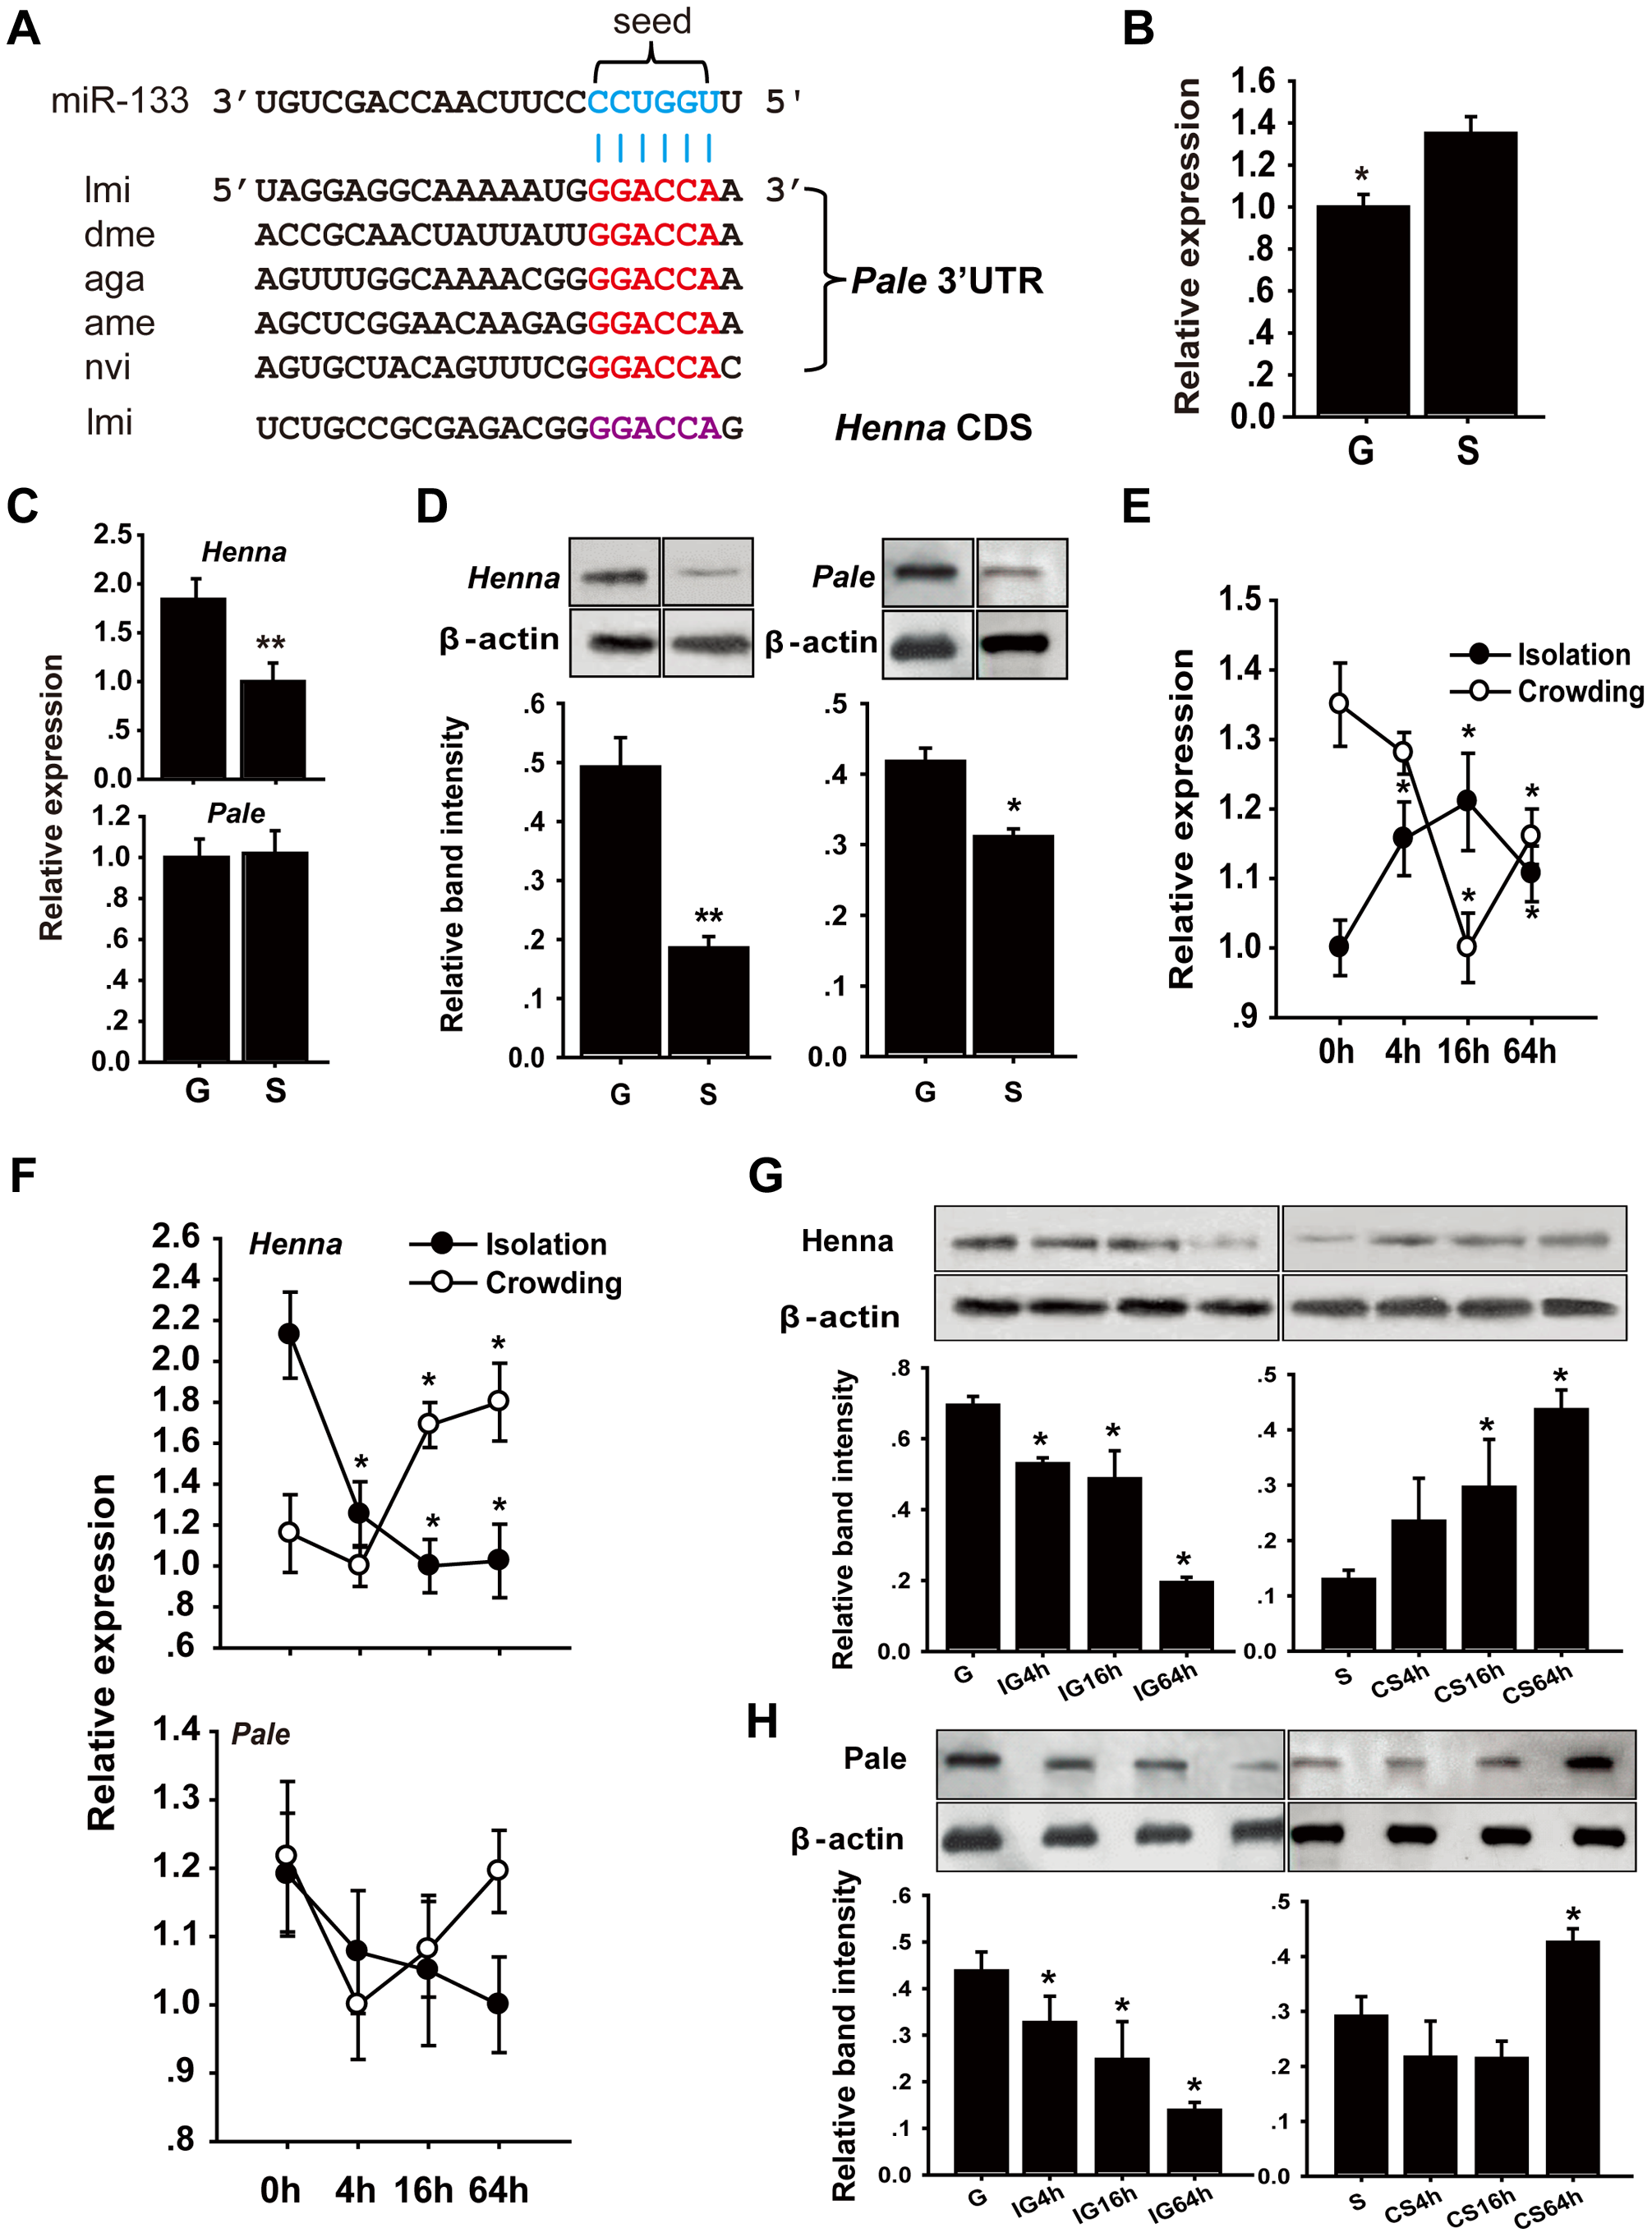 The dopamine pathway may be targeted by miR-133.